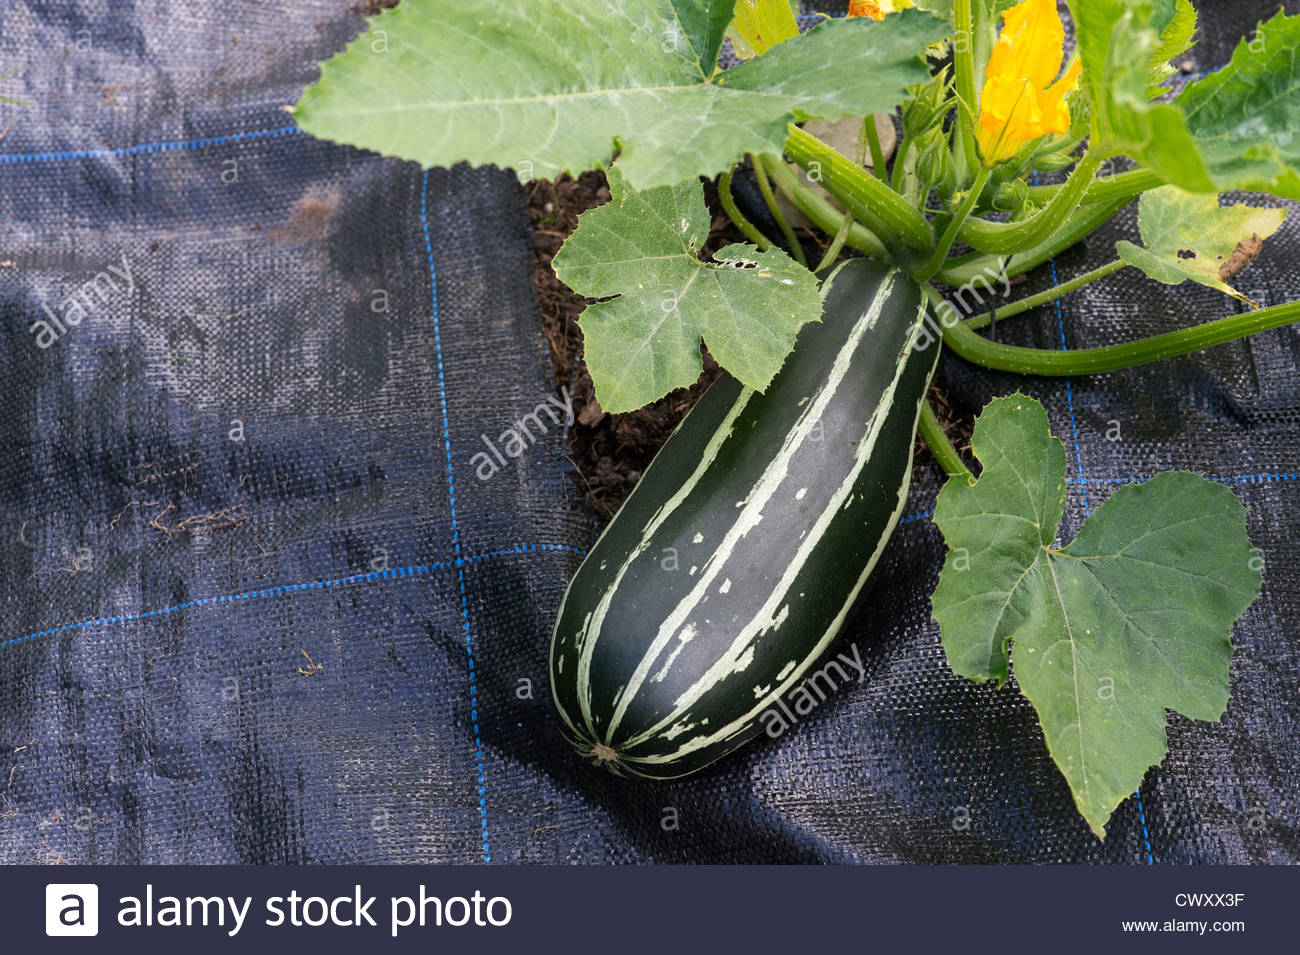 cucurbita pepo marrow badger cross grown through a weed. Black Bedroom Furniture Sets. Home Design Ideas